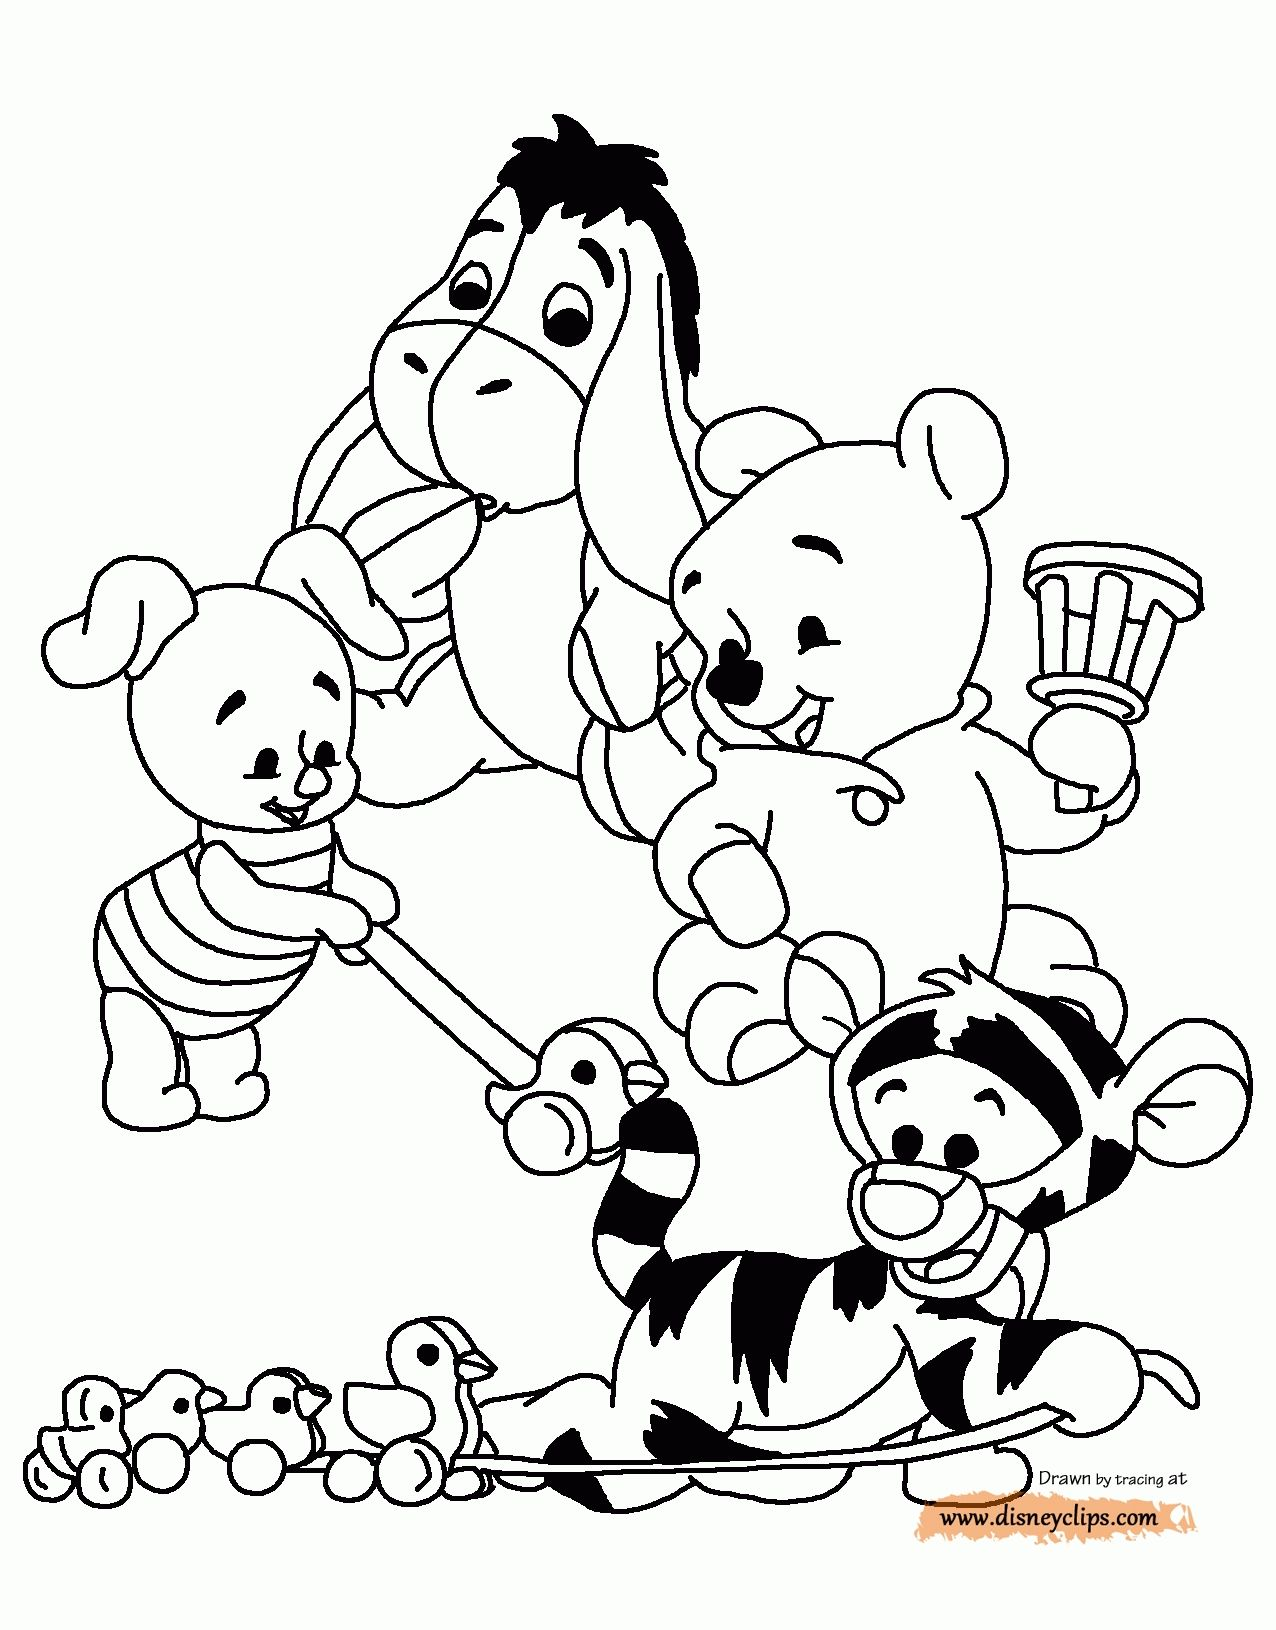 Baby Pooh Printable Coloring Pages Disney Coloring Book Pooh Within Printable Coloring Pag Disney Coloring Pages Baby Coloring Pages Cartoon Coloring Pages